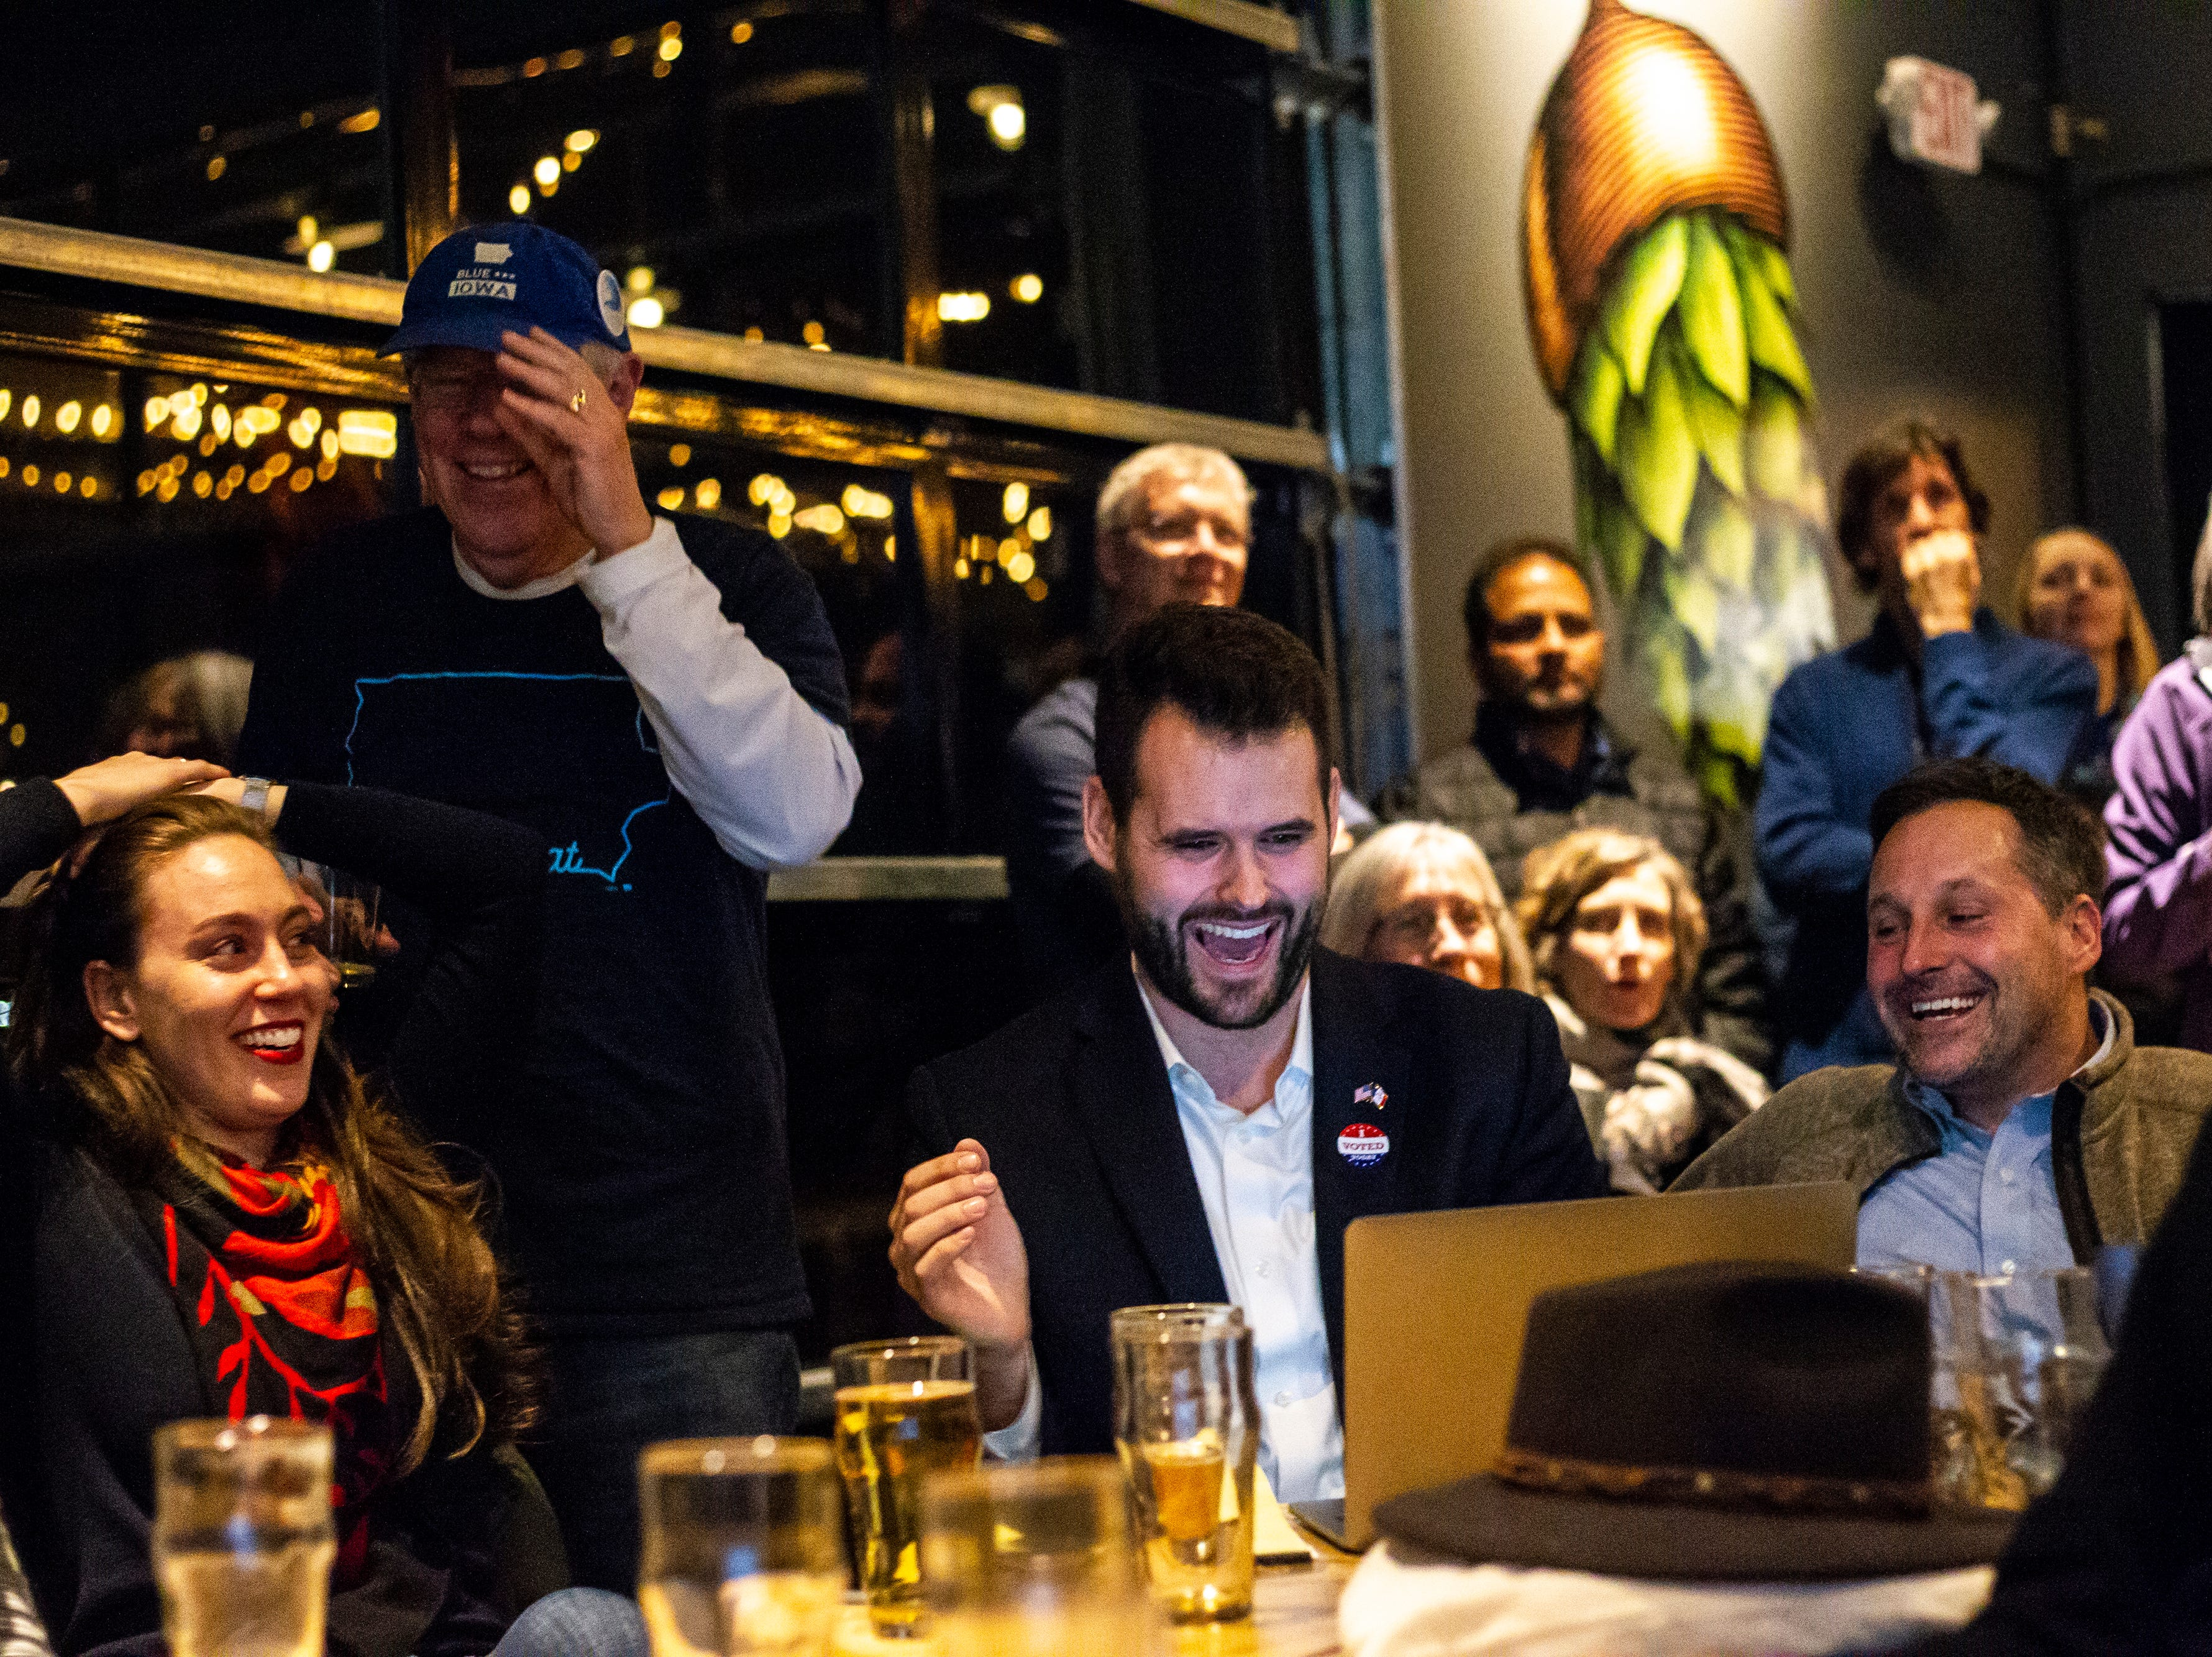 Zach Wahls celebrates during the Johnson County Democrats watch party on Tuesday, Nov. 6, 2018, at Big Grove Brewery in Iowa City.